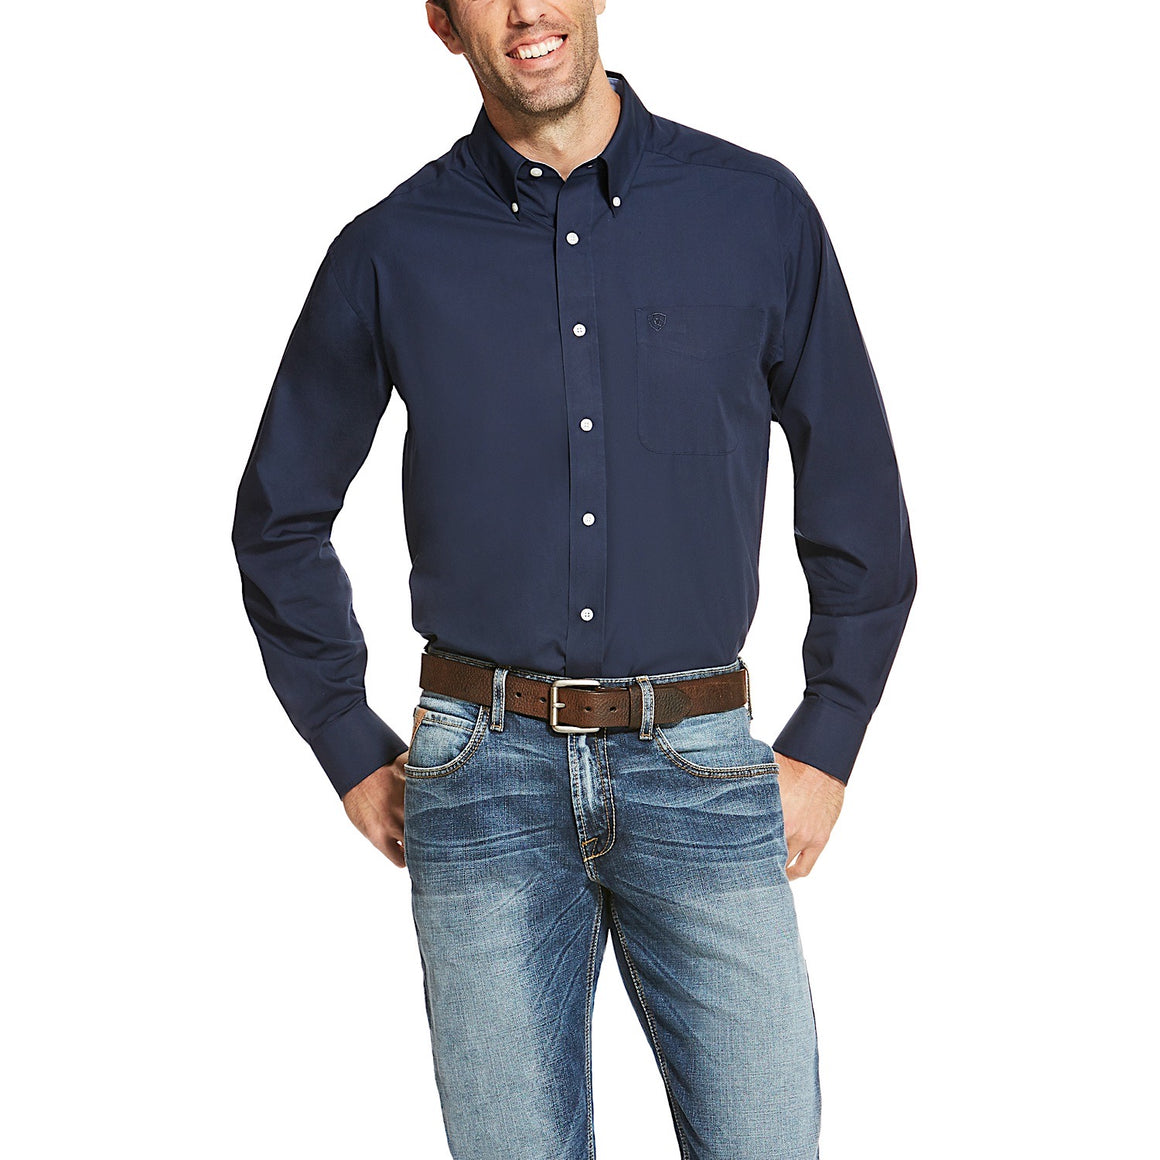 Ariat Mens Wrinkle Free Solid Classic Fit Shirt Navy Blue